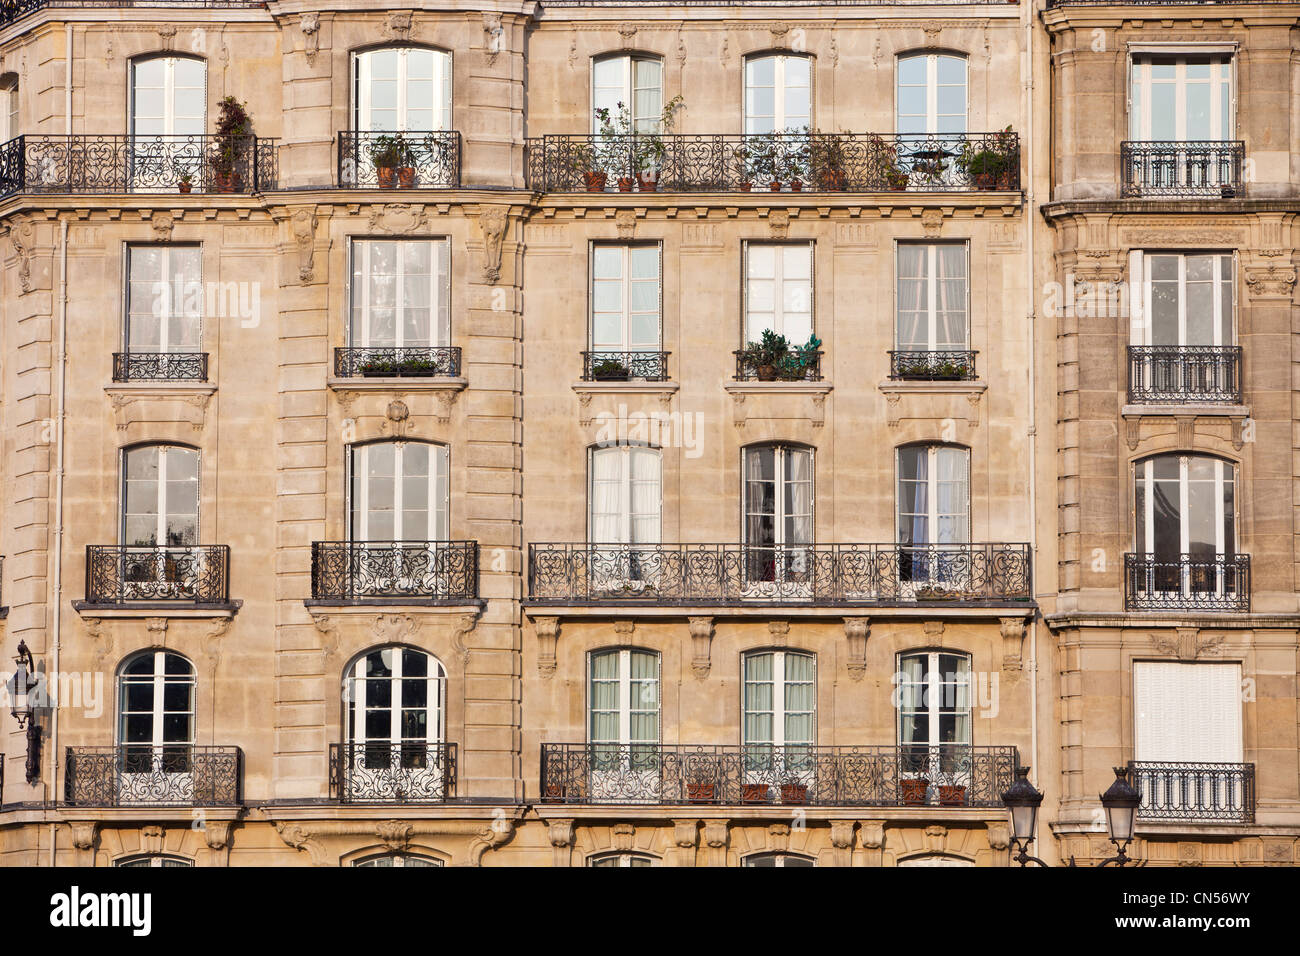 france paris haussmann building type facade on the ile st louis stock photo royalty free. Black Bedroom Furniture Sets. Home Design Ideas